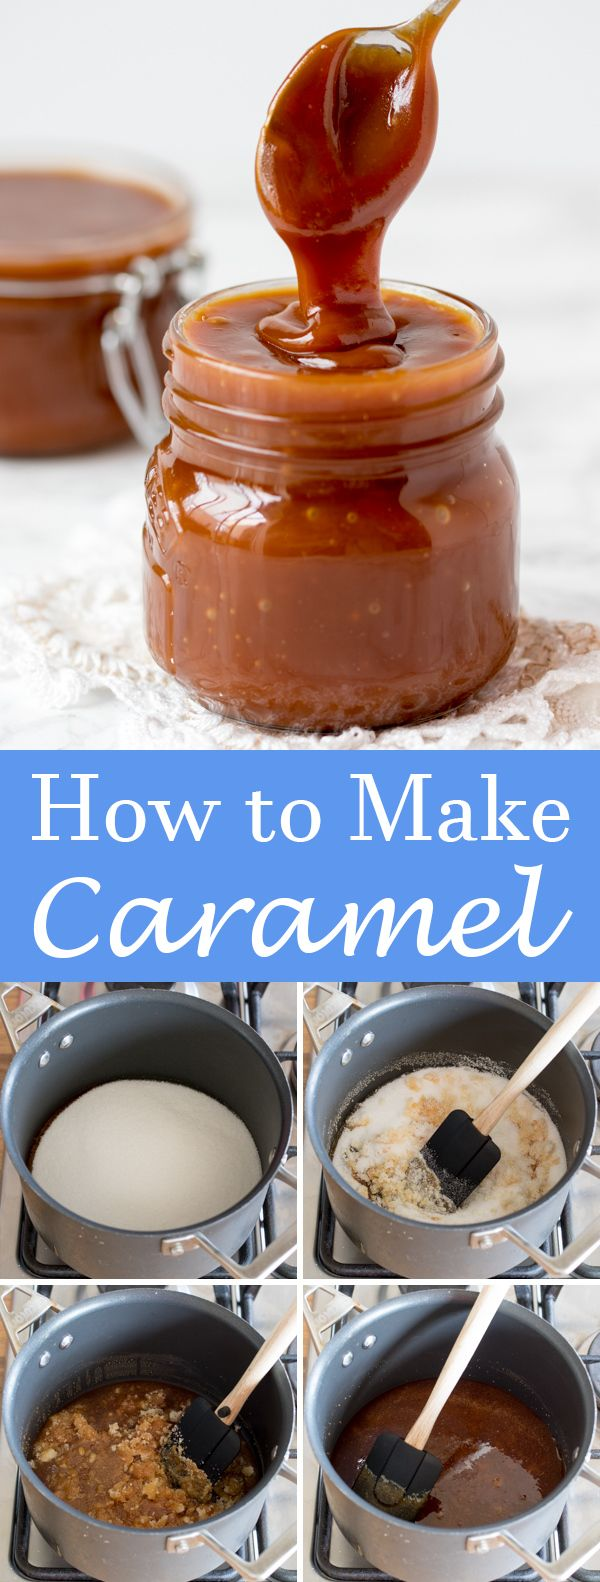 How to Make Caramel